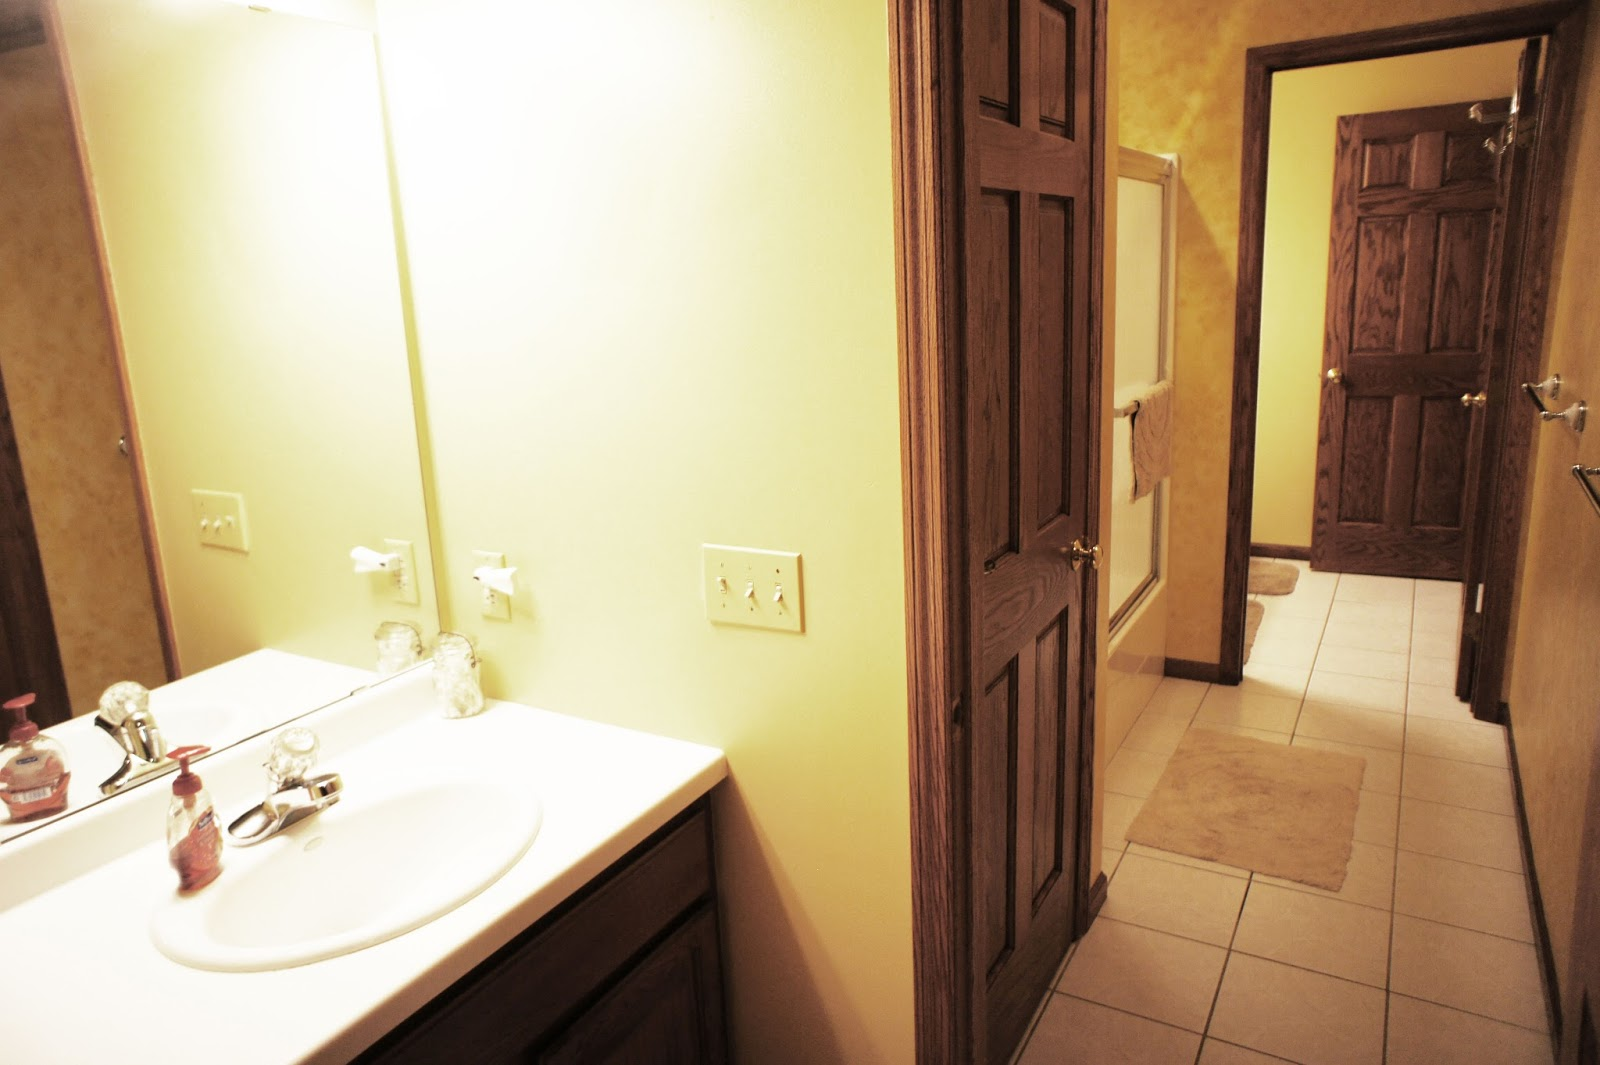 Dan dekker real estate for Jack and jill bathroom with hall access